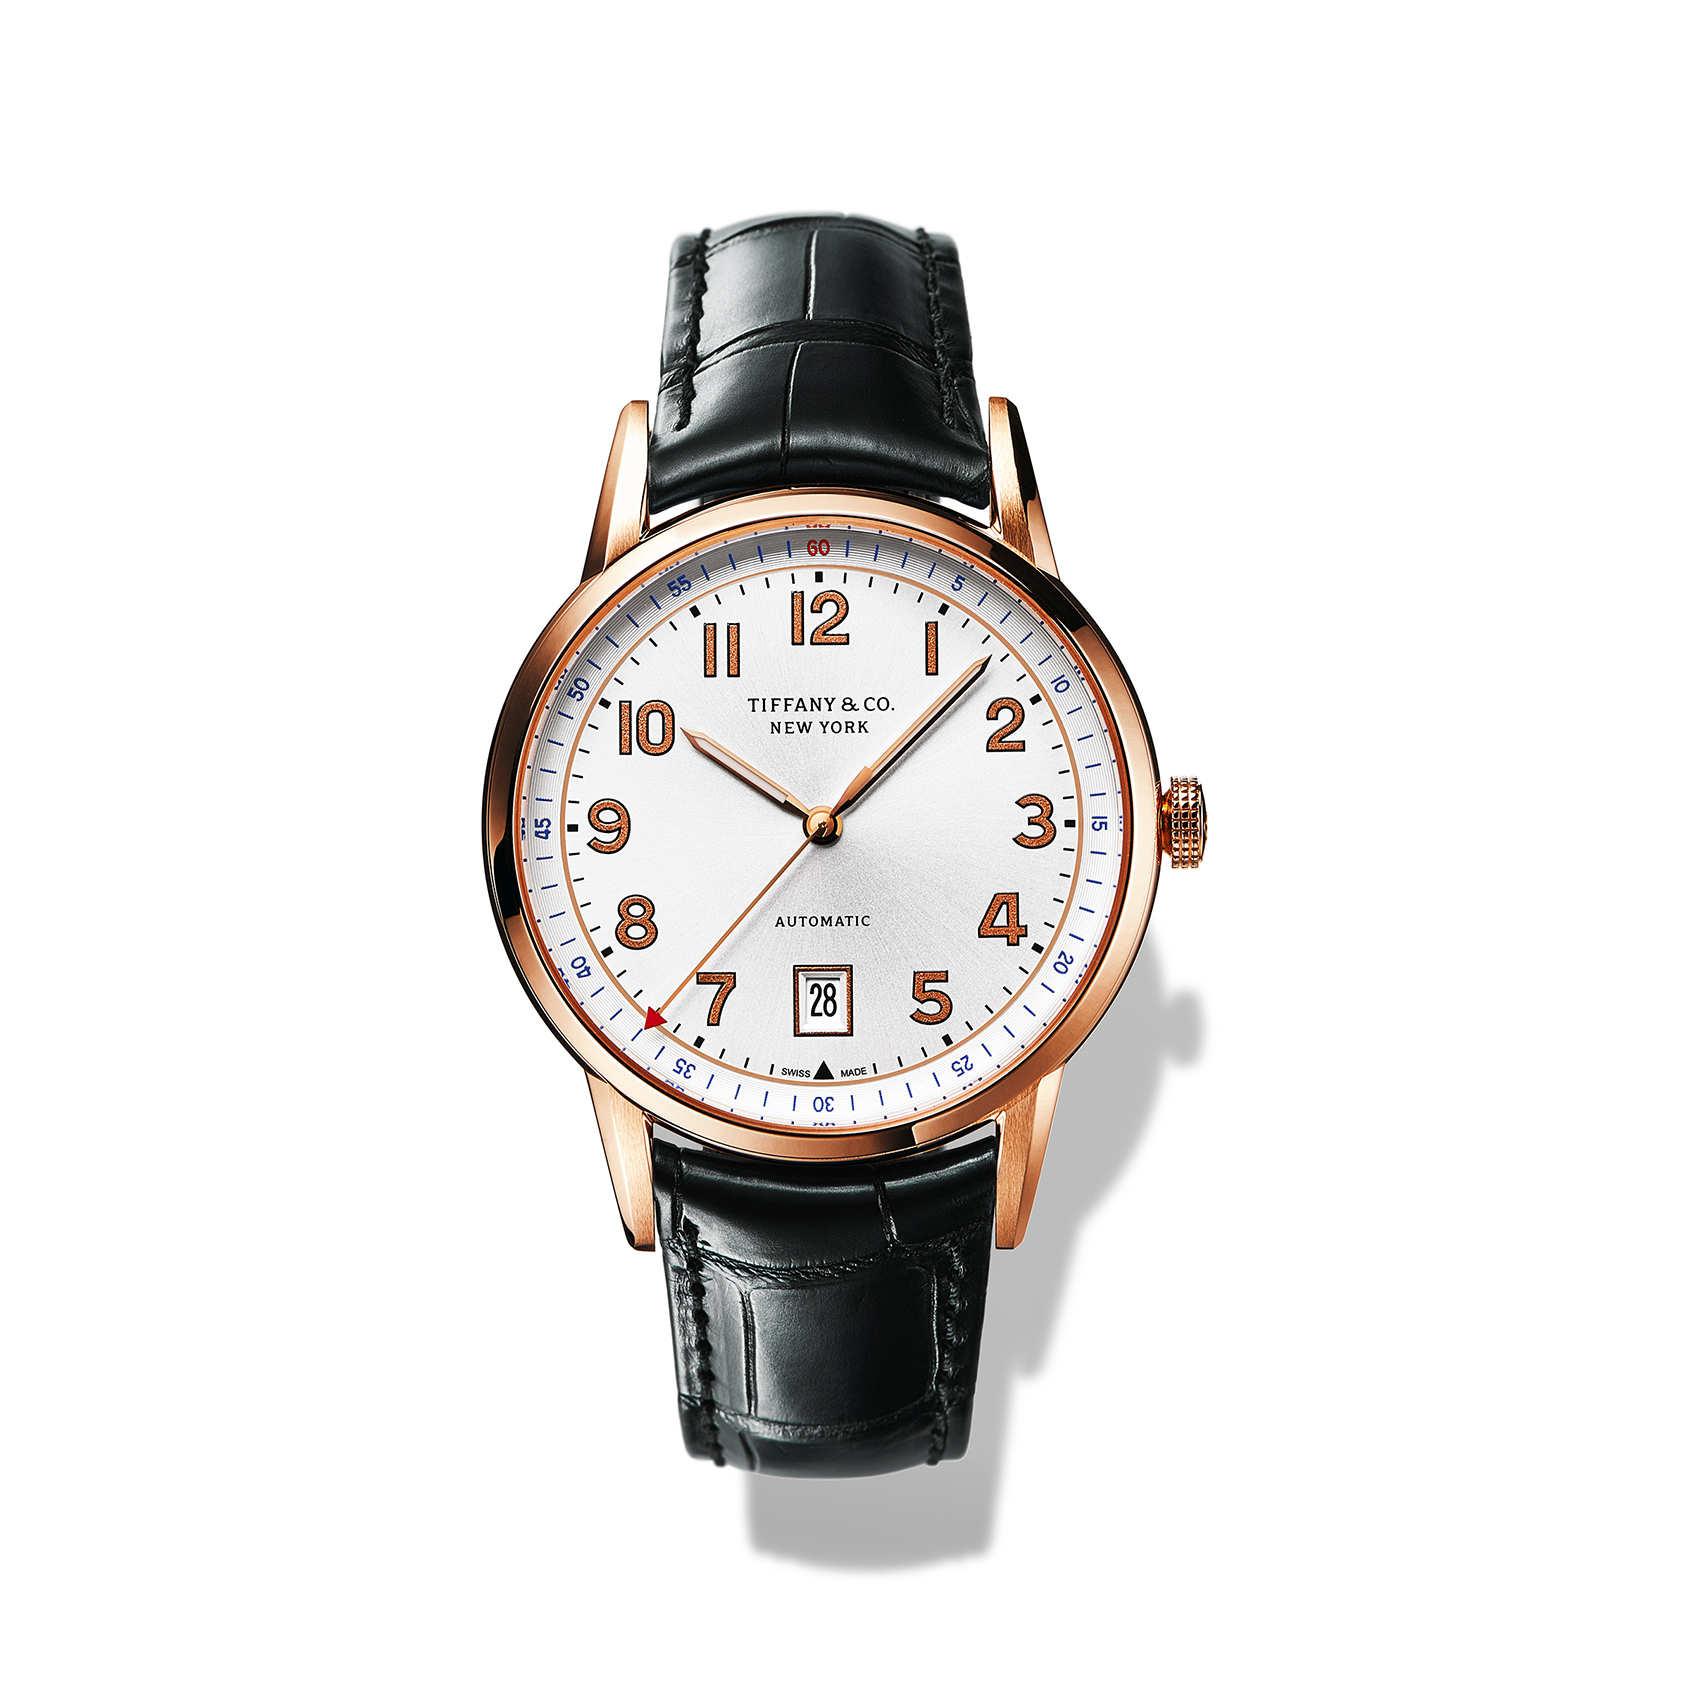 image ladies mondaine j son watches watch herron rb at buy essence